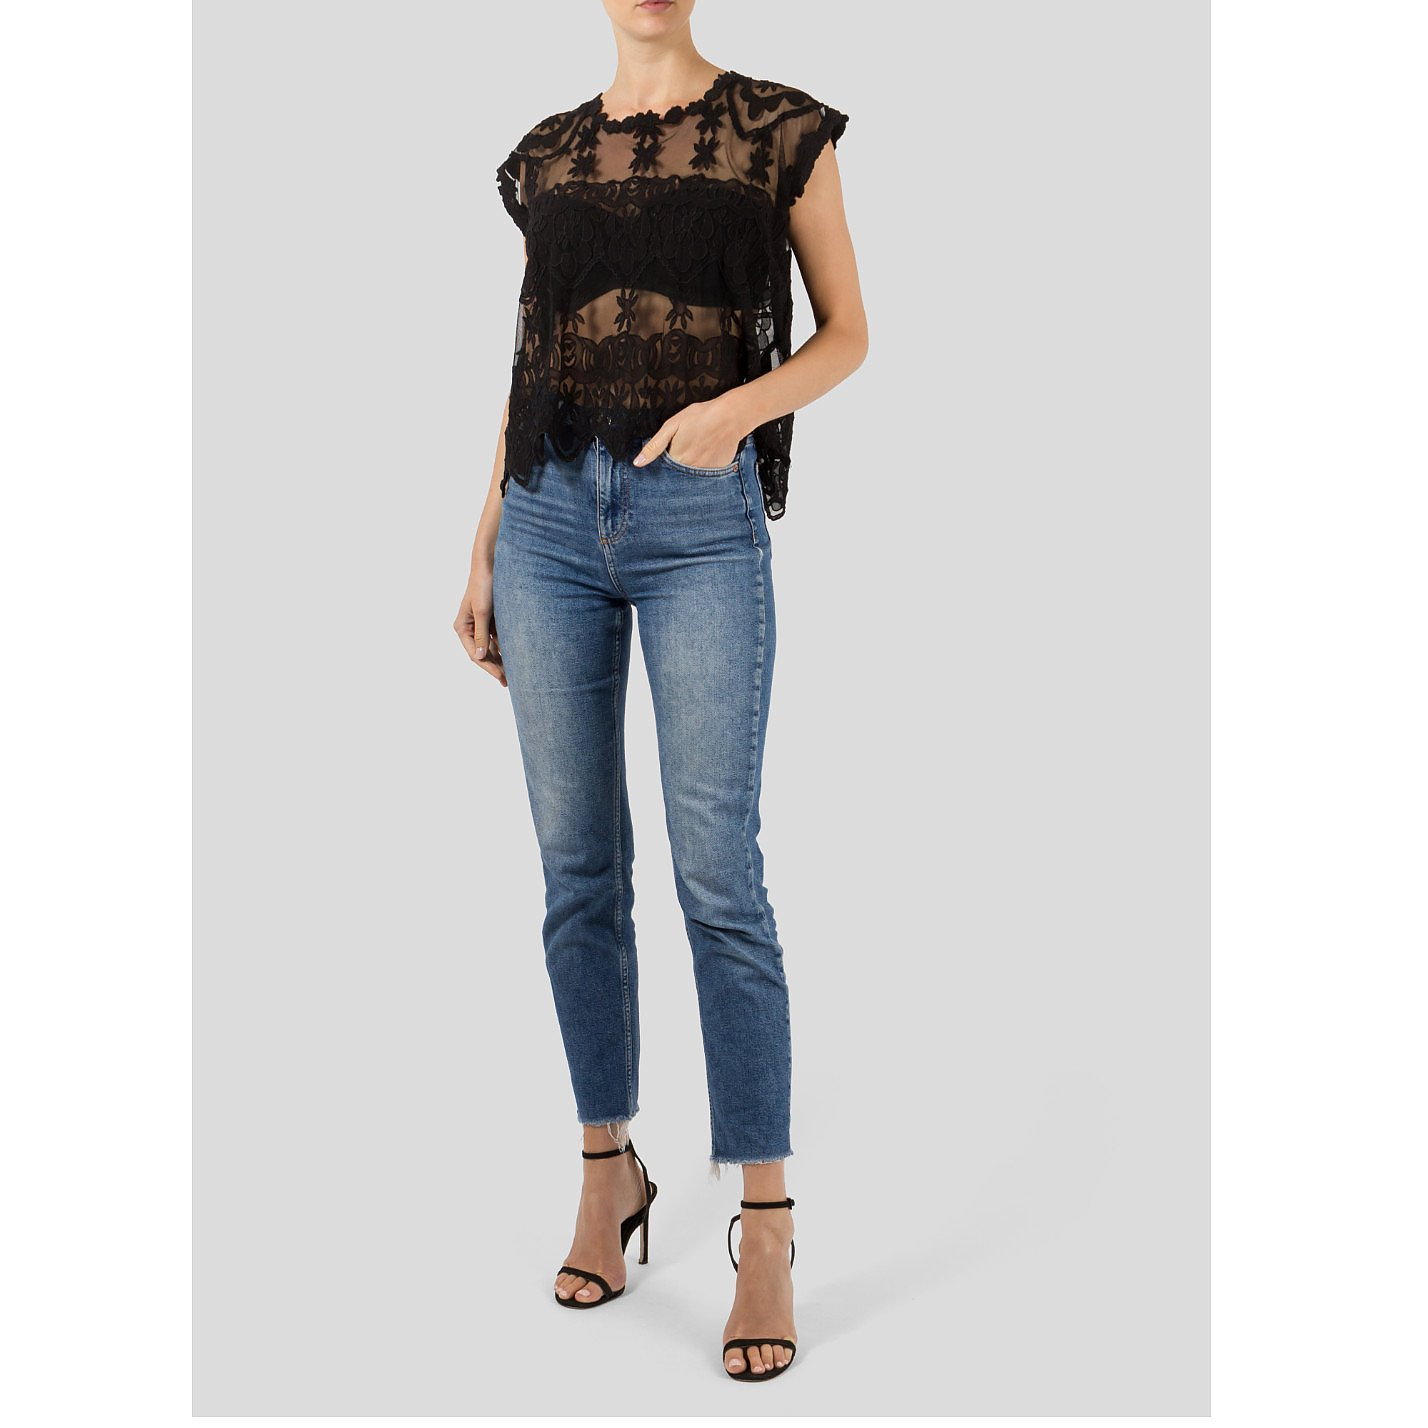 Zadig & Voltaire Lace Embroidered Top